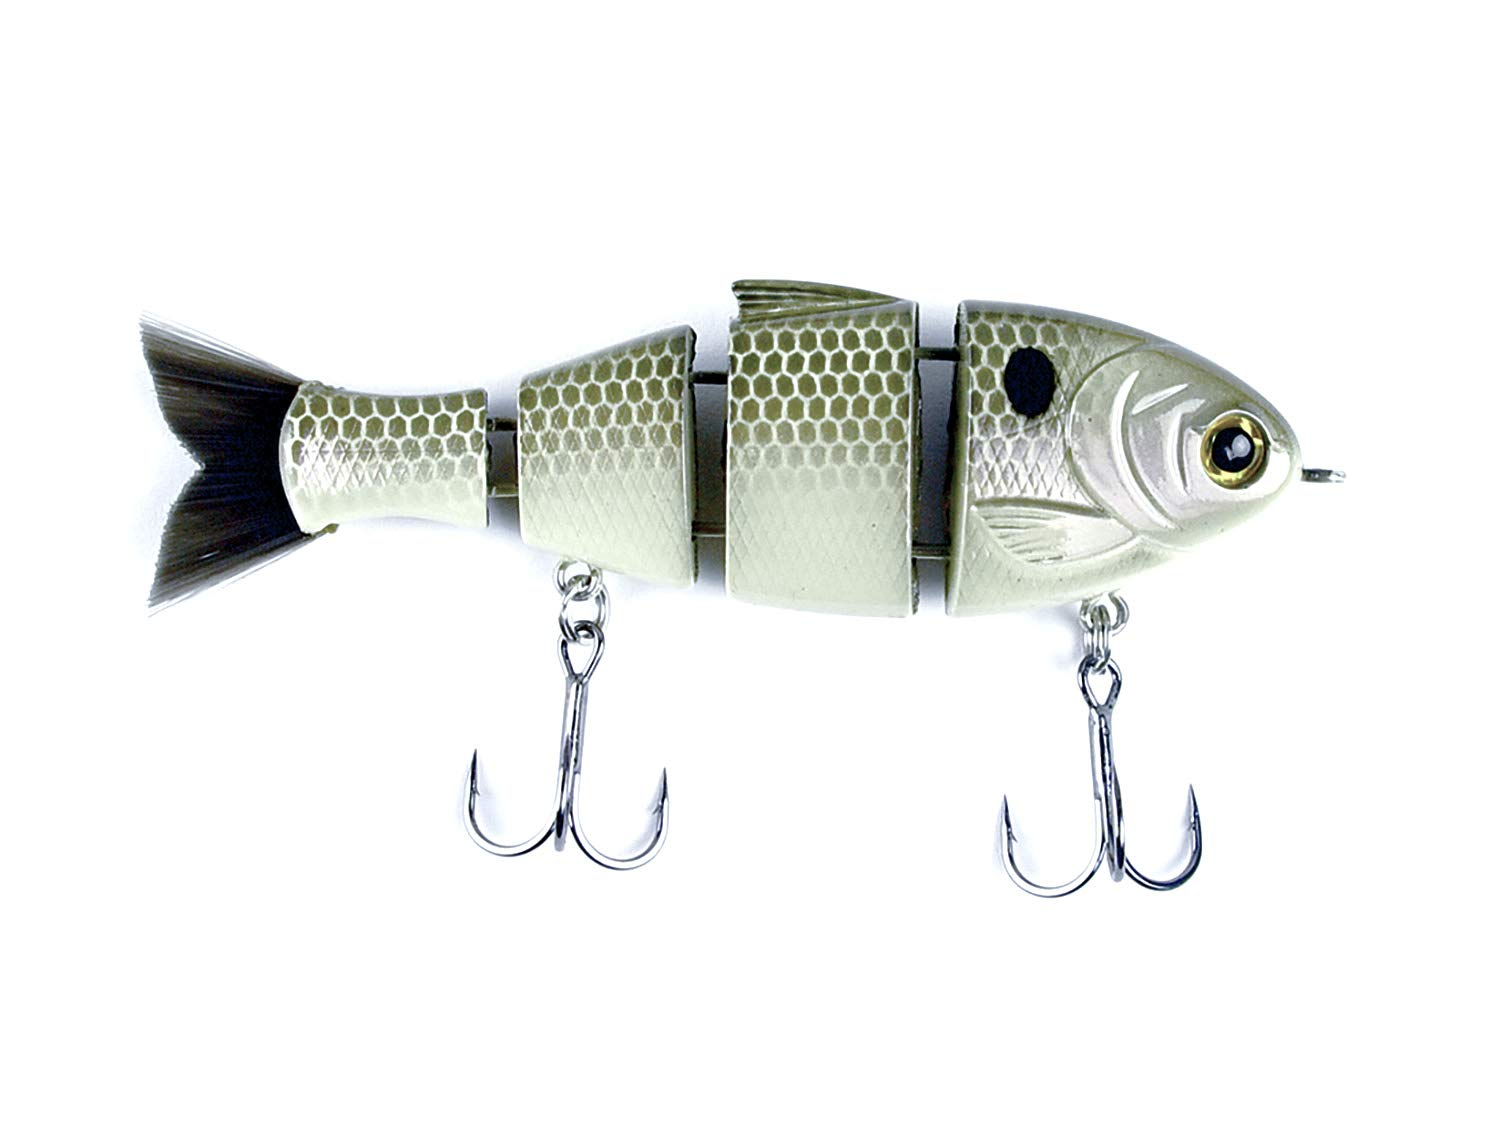 CATCH CO Mike Bucca's Baby Bull Shad Swimbait 3.75'' 1/2 oz Gizzard Shad by CATCH CO